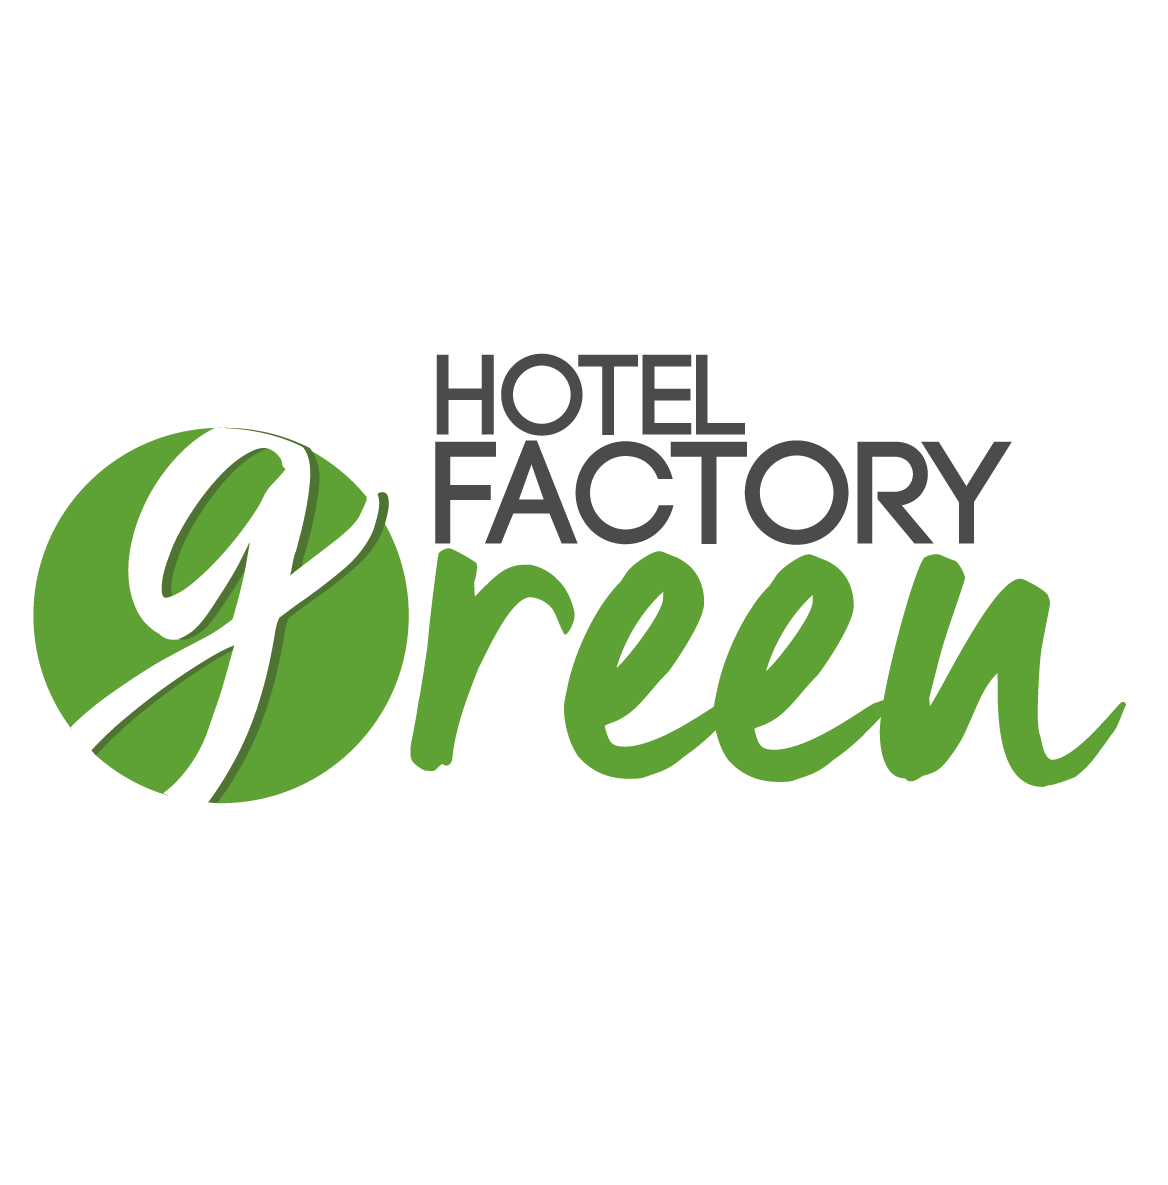 Factory Green logo